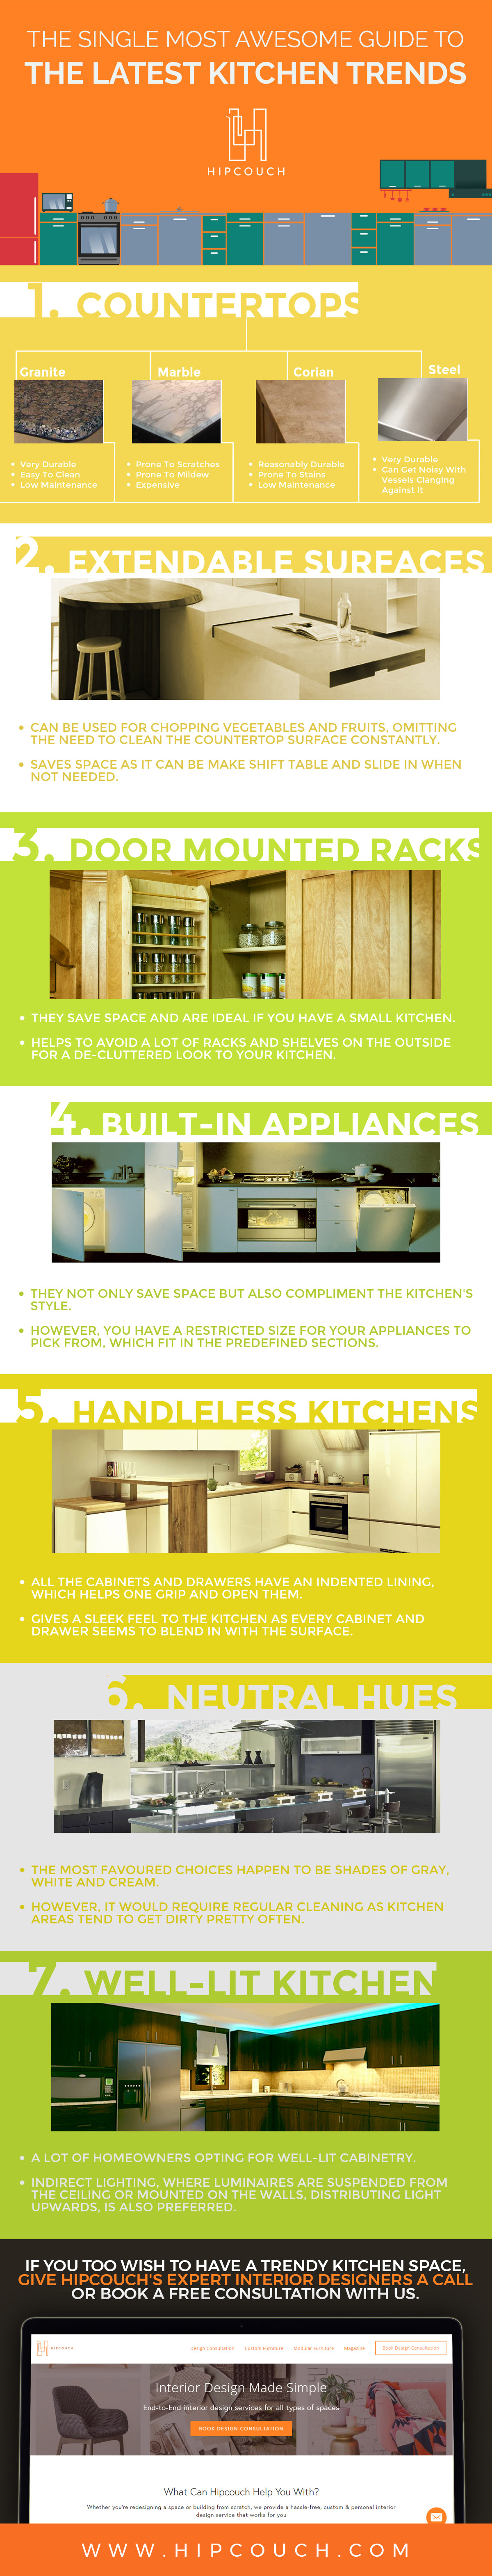 What's Cooking? Your Ultimate Guide To Latest Kitchen Trends